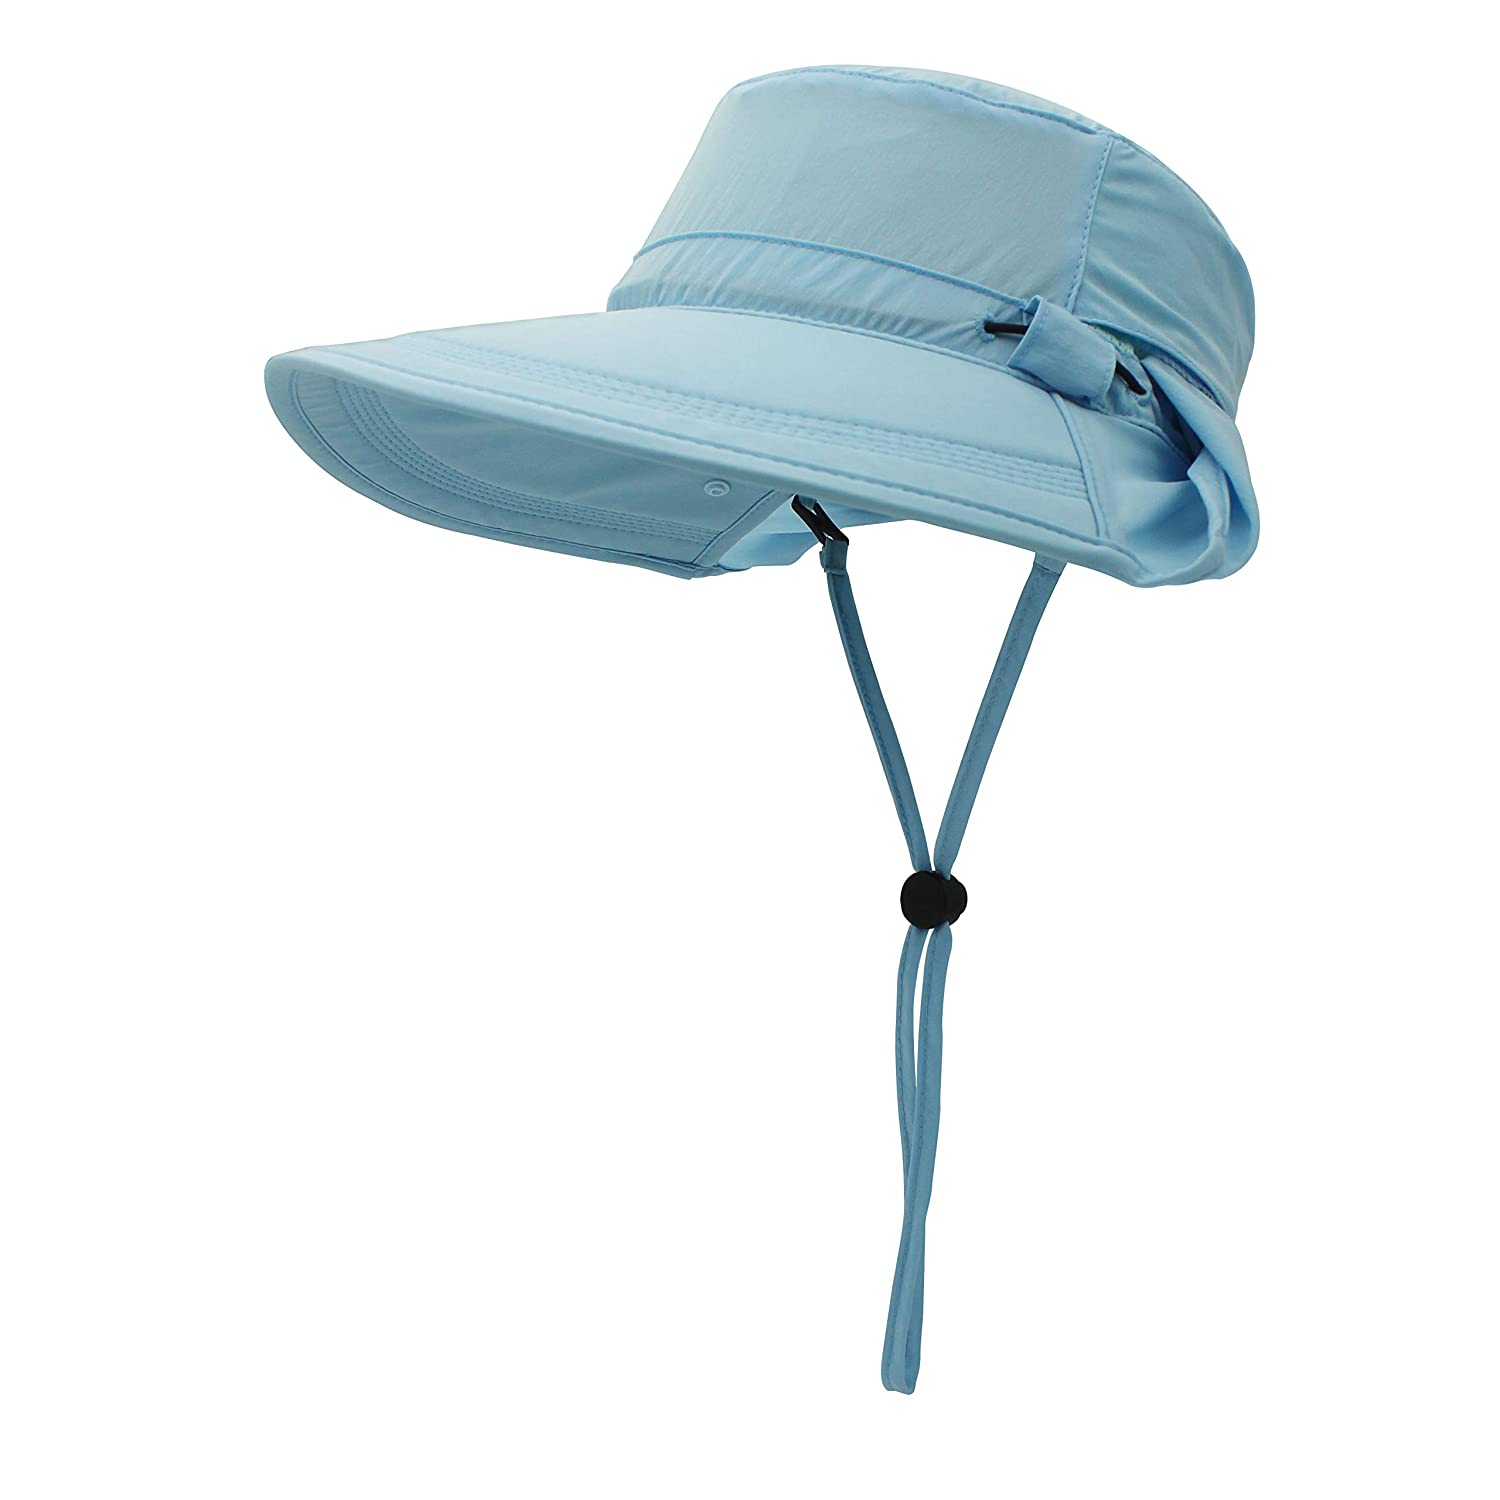 outfly Summer Sun Hat of Women Multipurpose UV Protection Beach Hat Wide Brim Bucket Hat Travelling Cap Protect Neck and Face